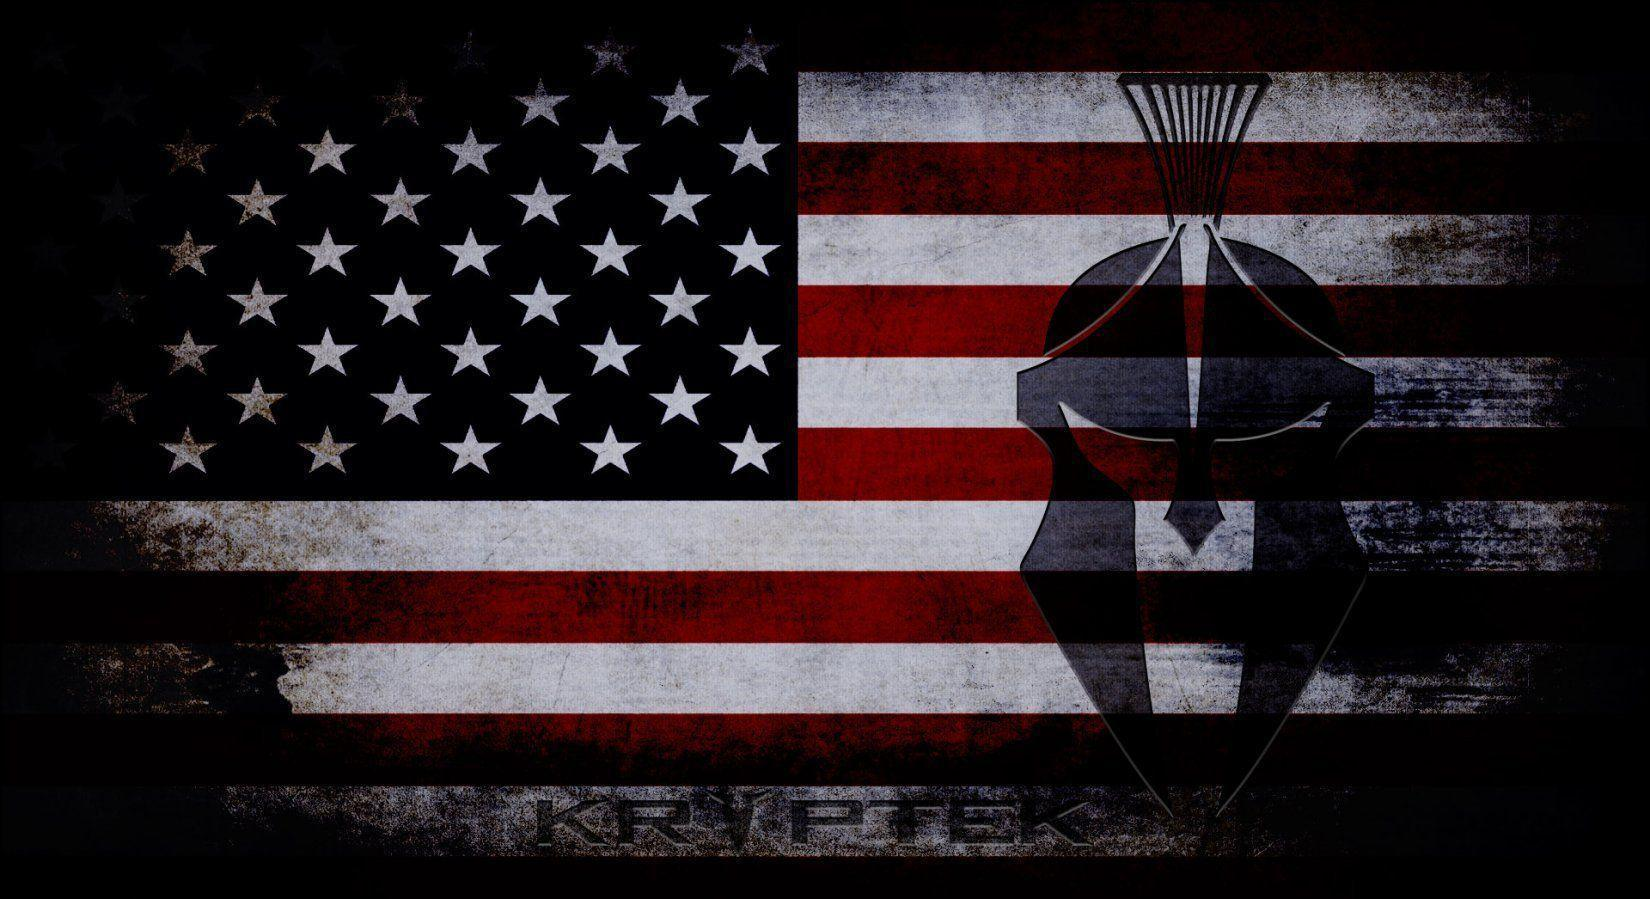 Kryptek Logo Wallpaper: Law Enforcement Wallpapers